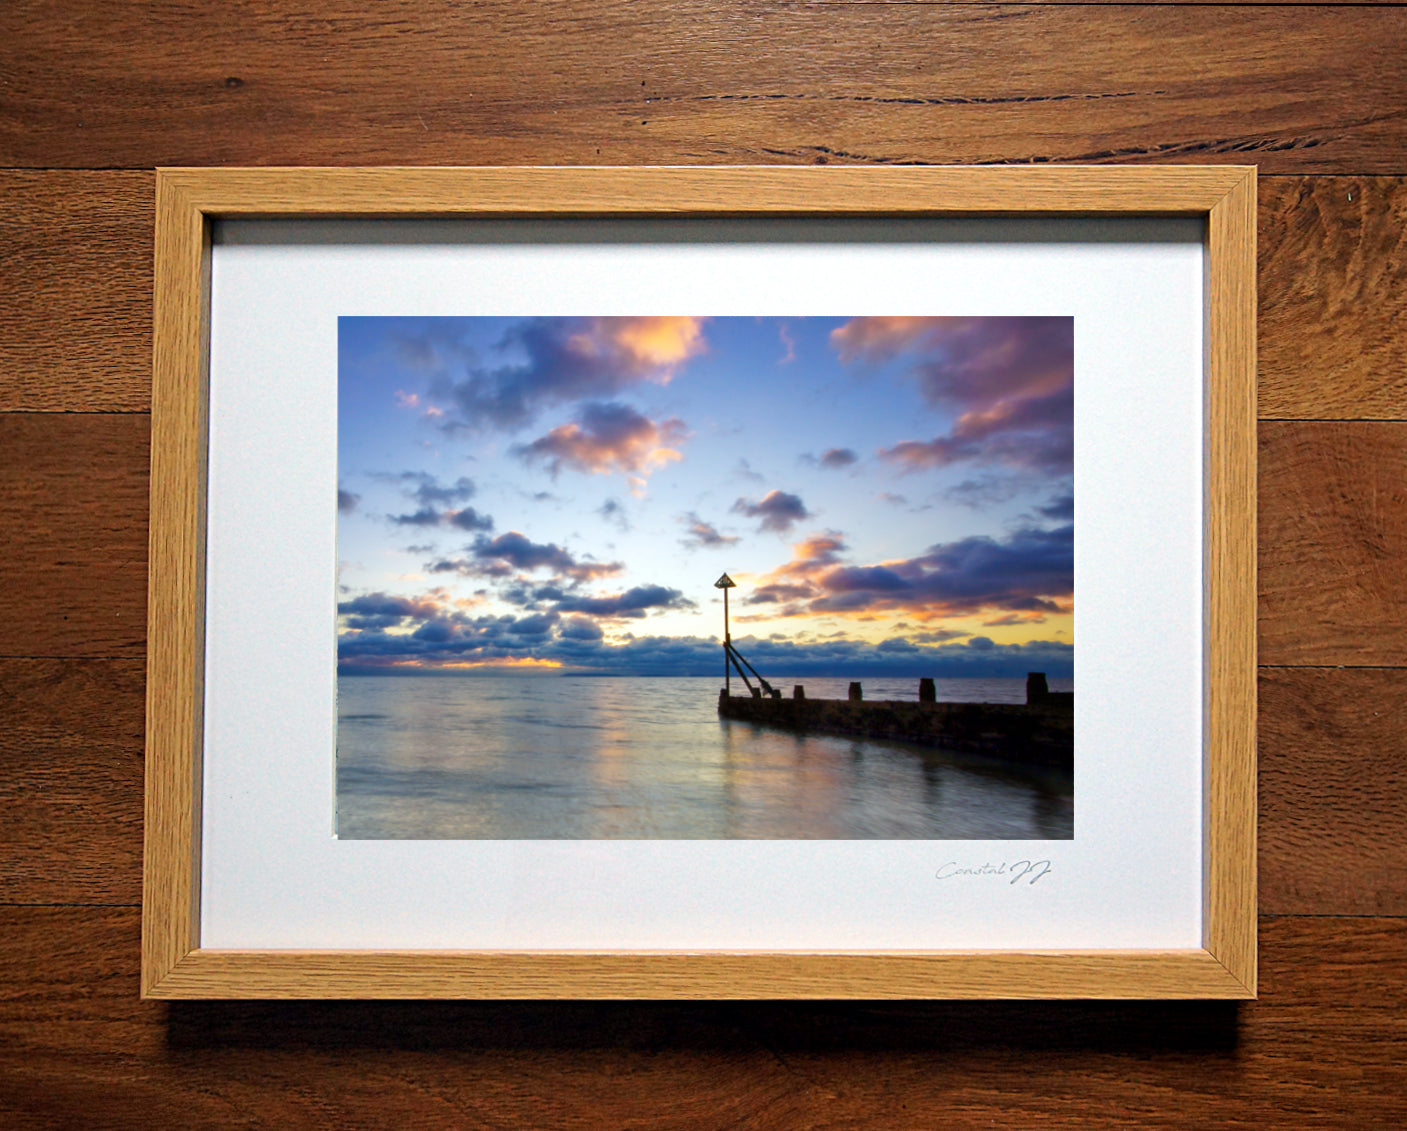 'Autumn Sunset at West Beach' Framed Print - £40